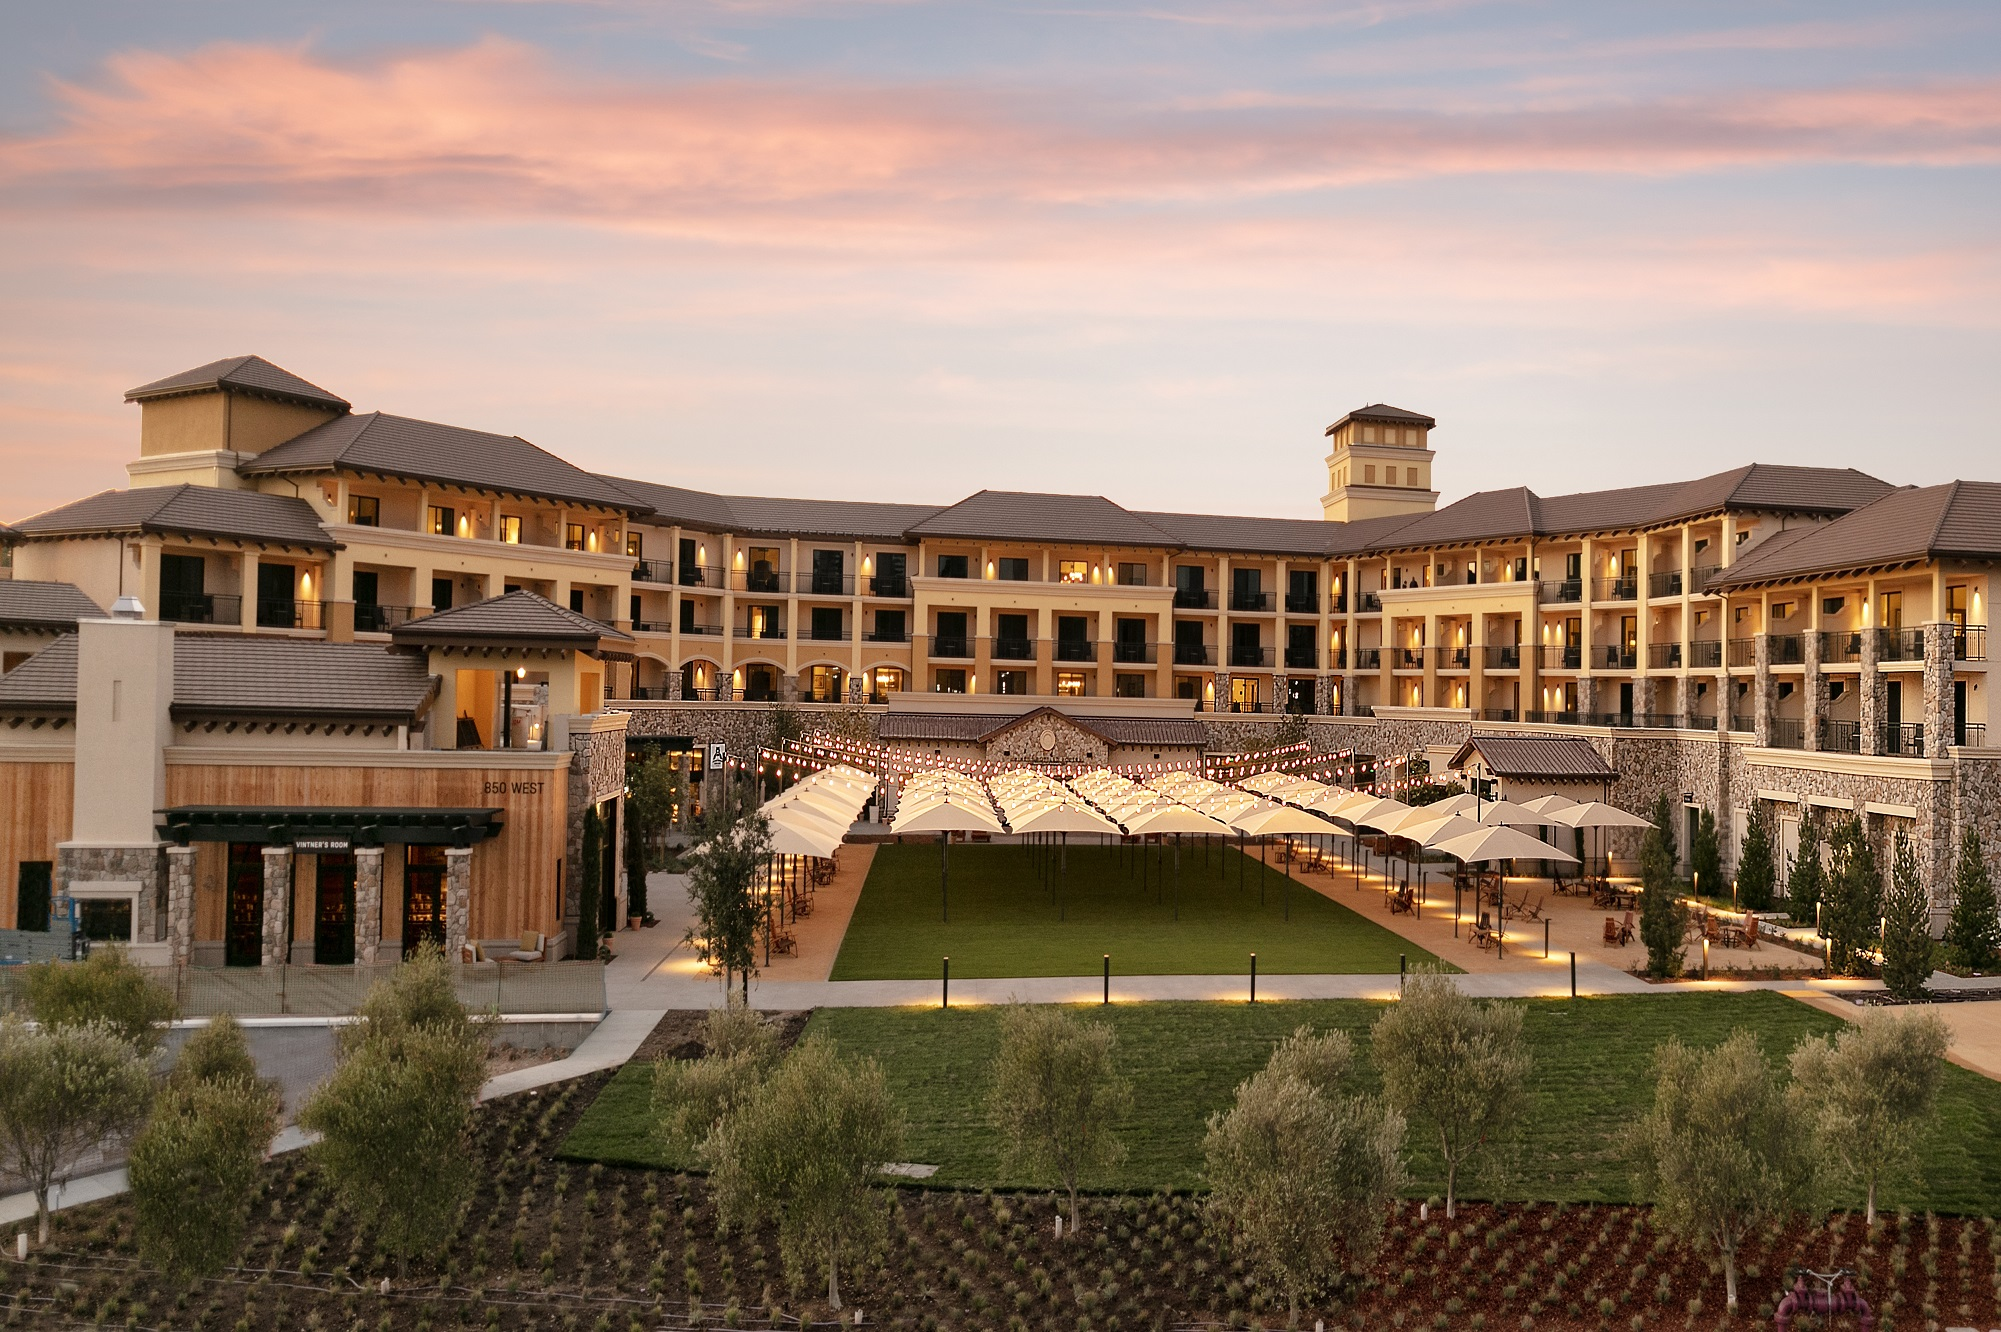 Our hotel, while in Napa, is at the lovely Vista Collina Resort. - Napa Valley #napa